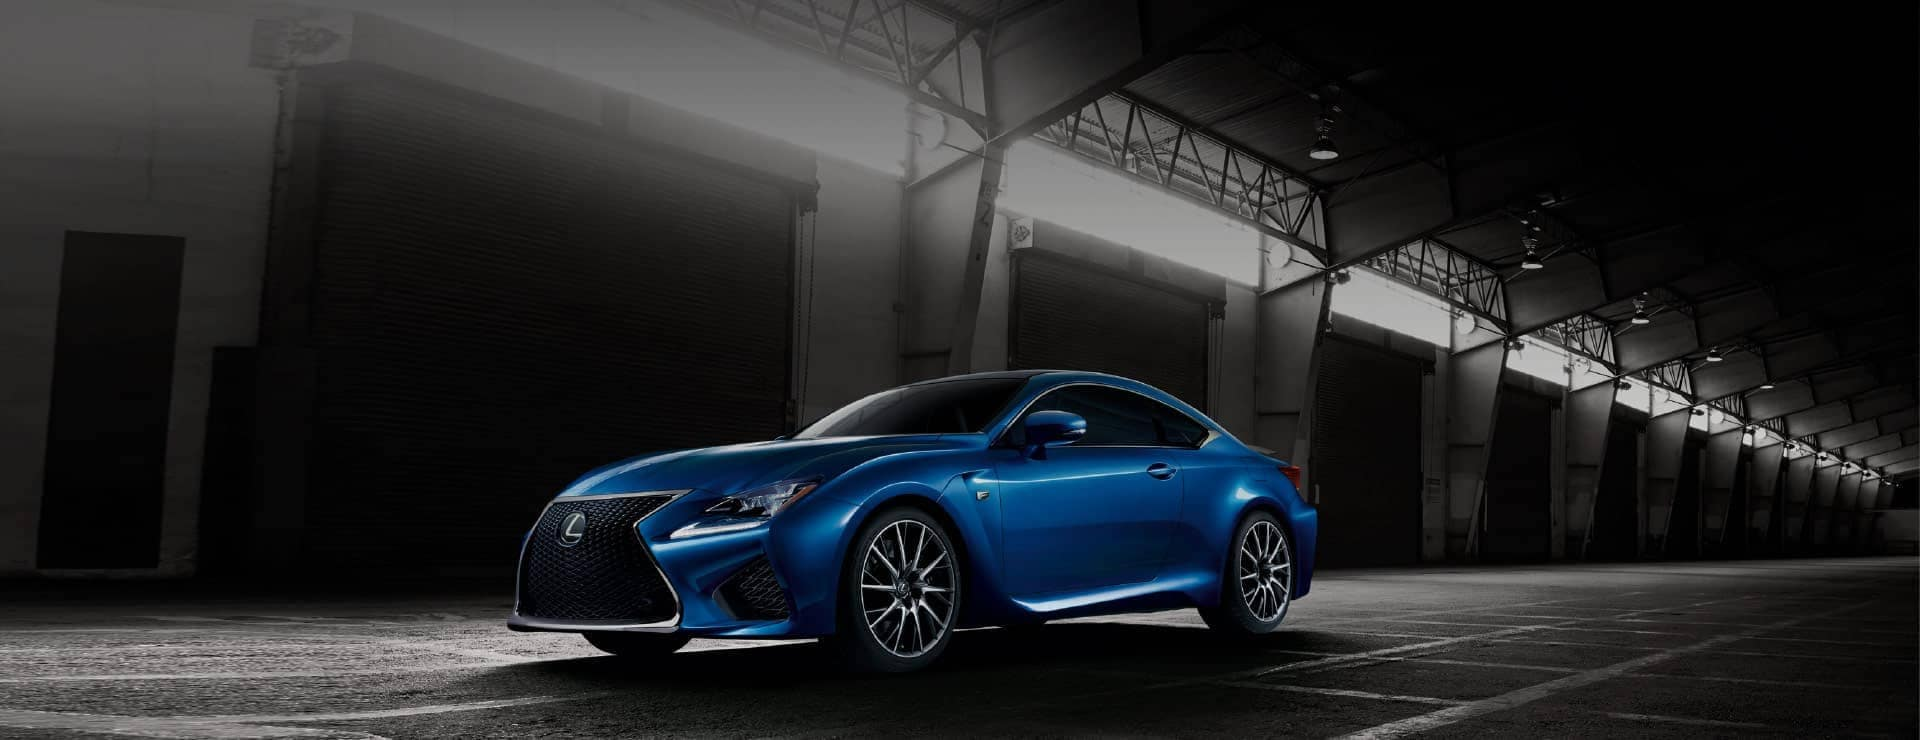 Ray Catena Lexus of Freehold | Lexus Dealer in Freehold, NJ